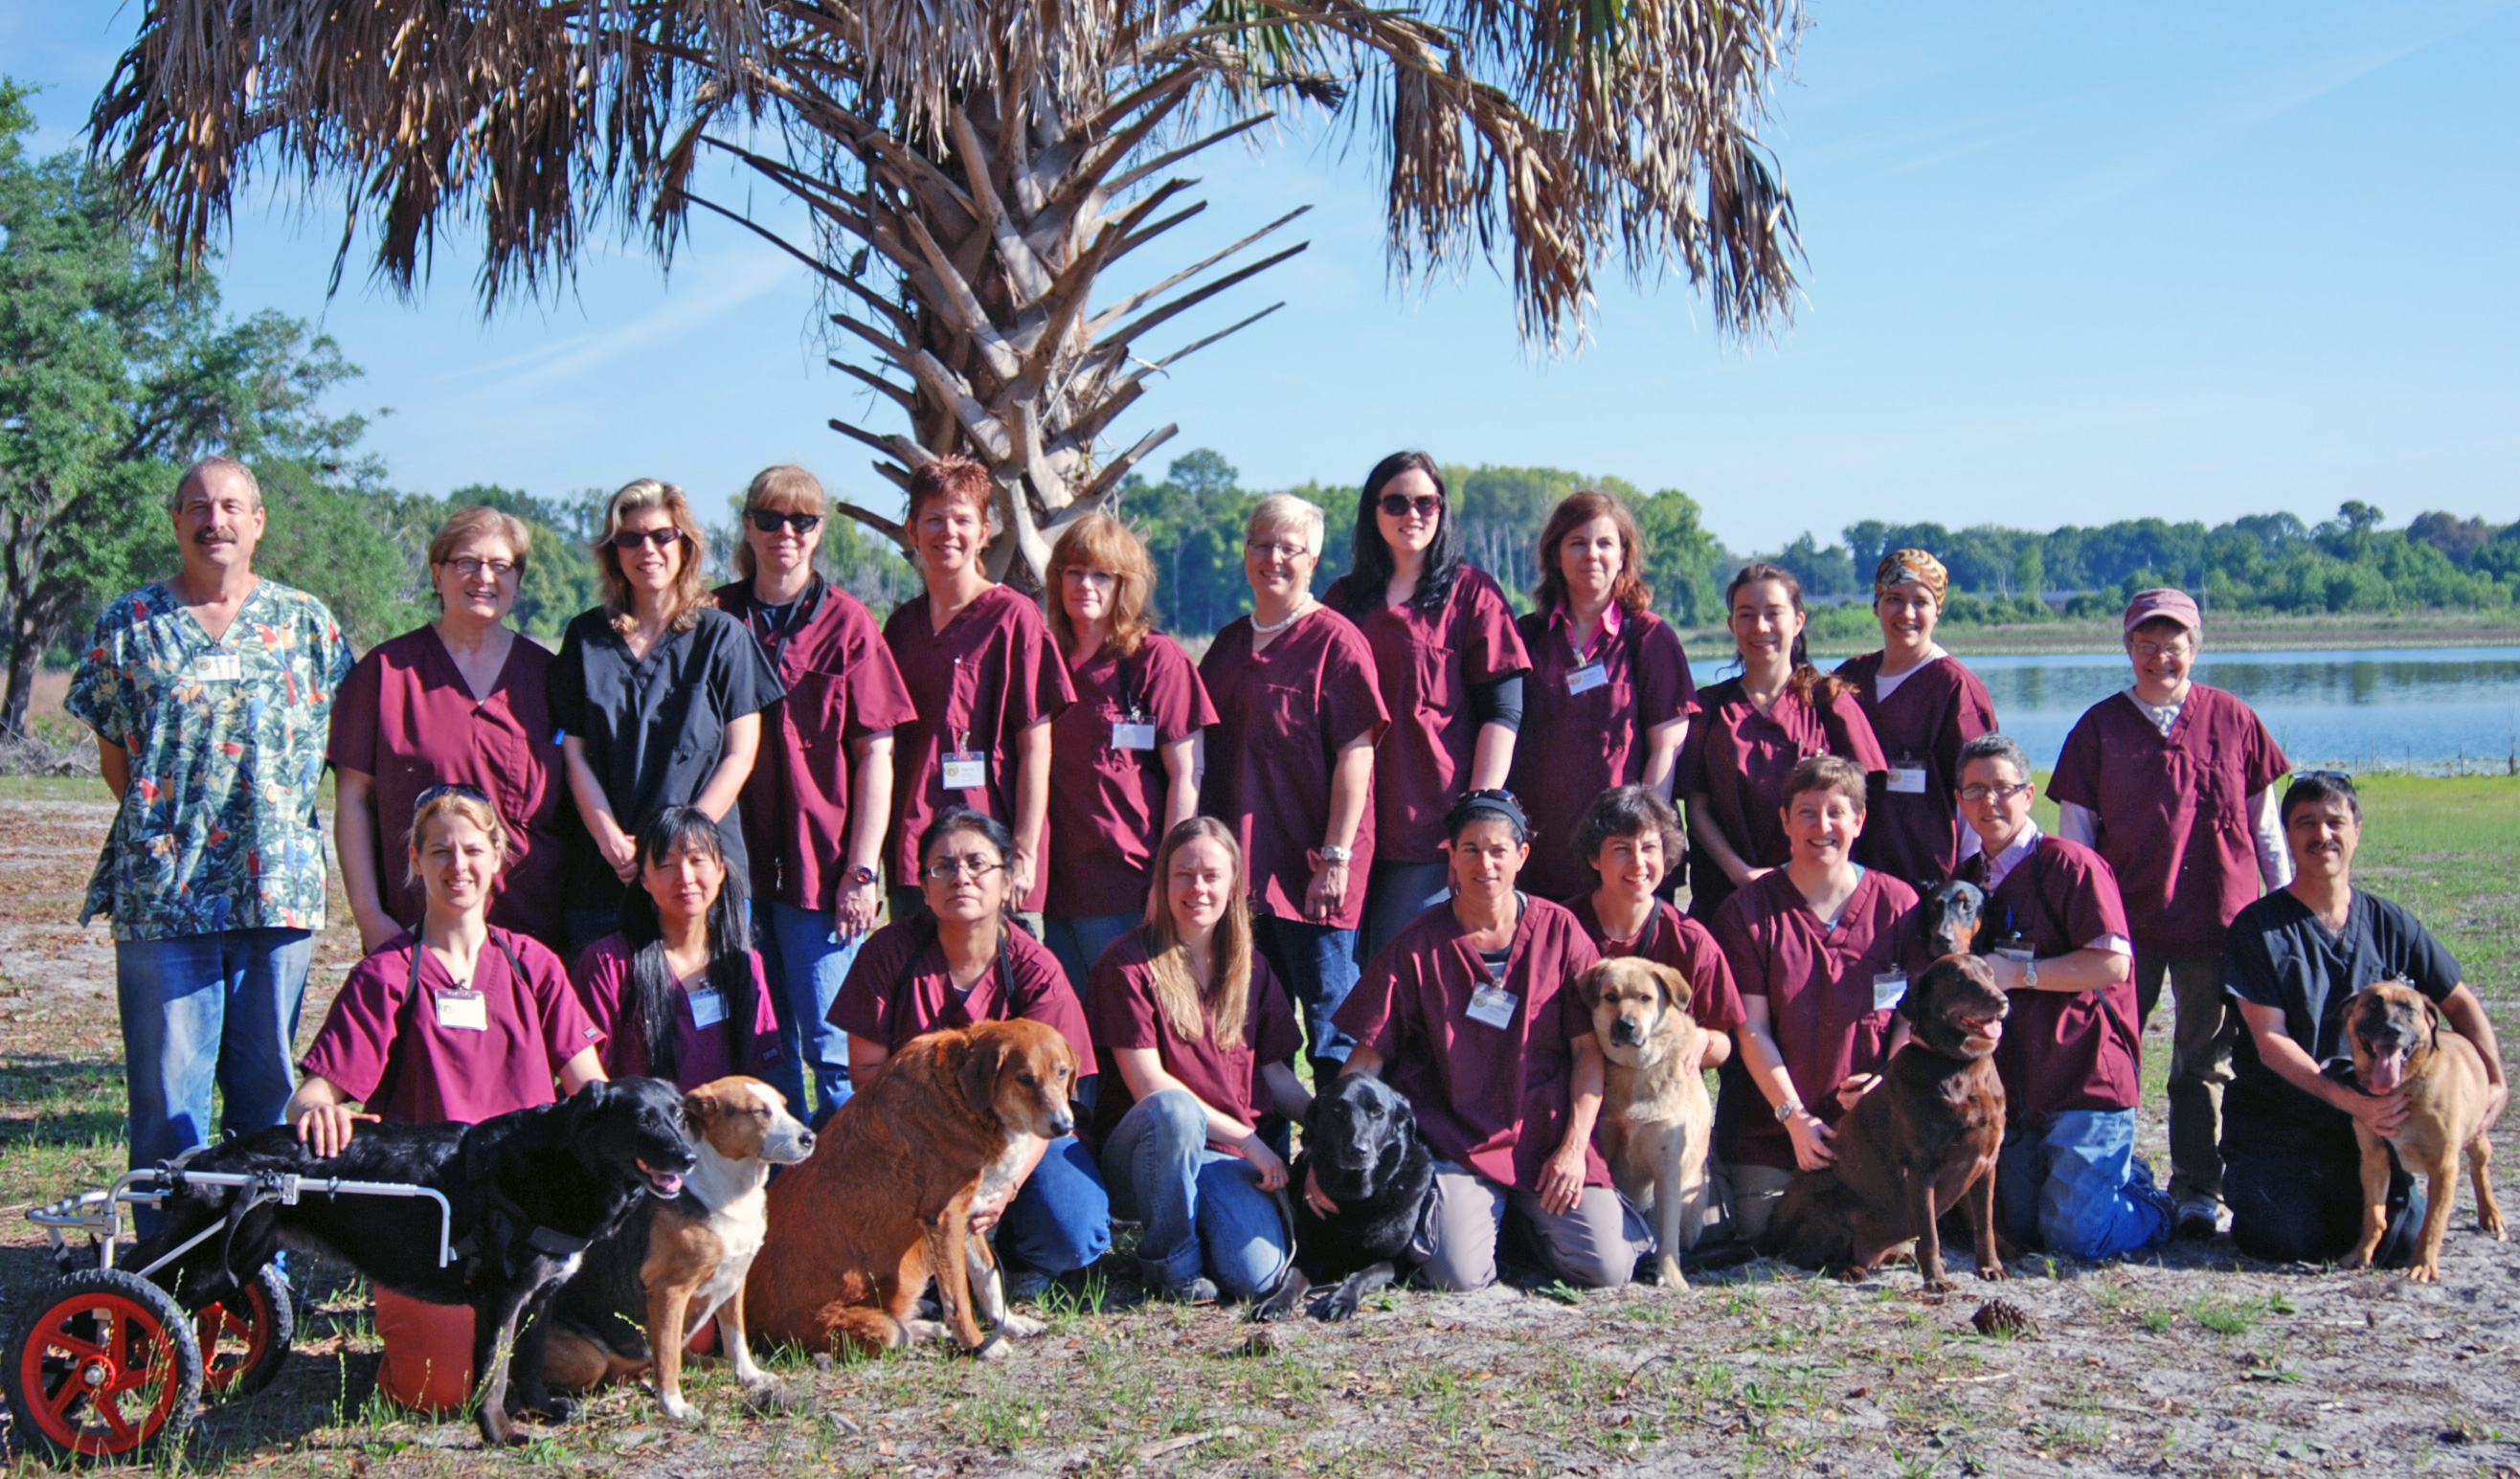 Students at canine behavior ARL at college's Dream Pond Science Field Station and Reserve in Crescent City FL USA